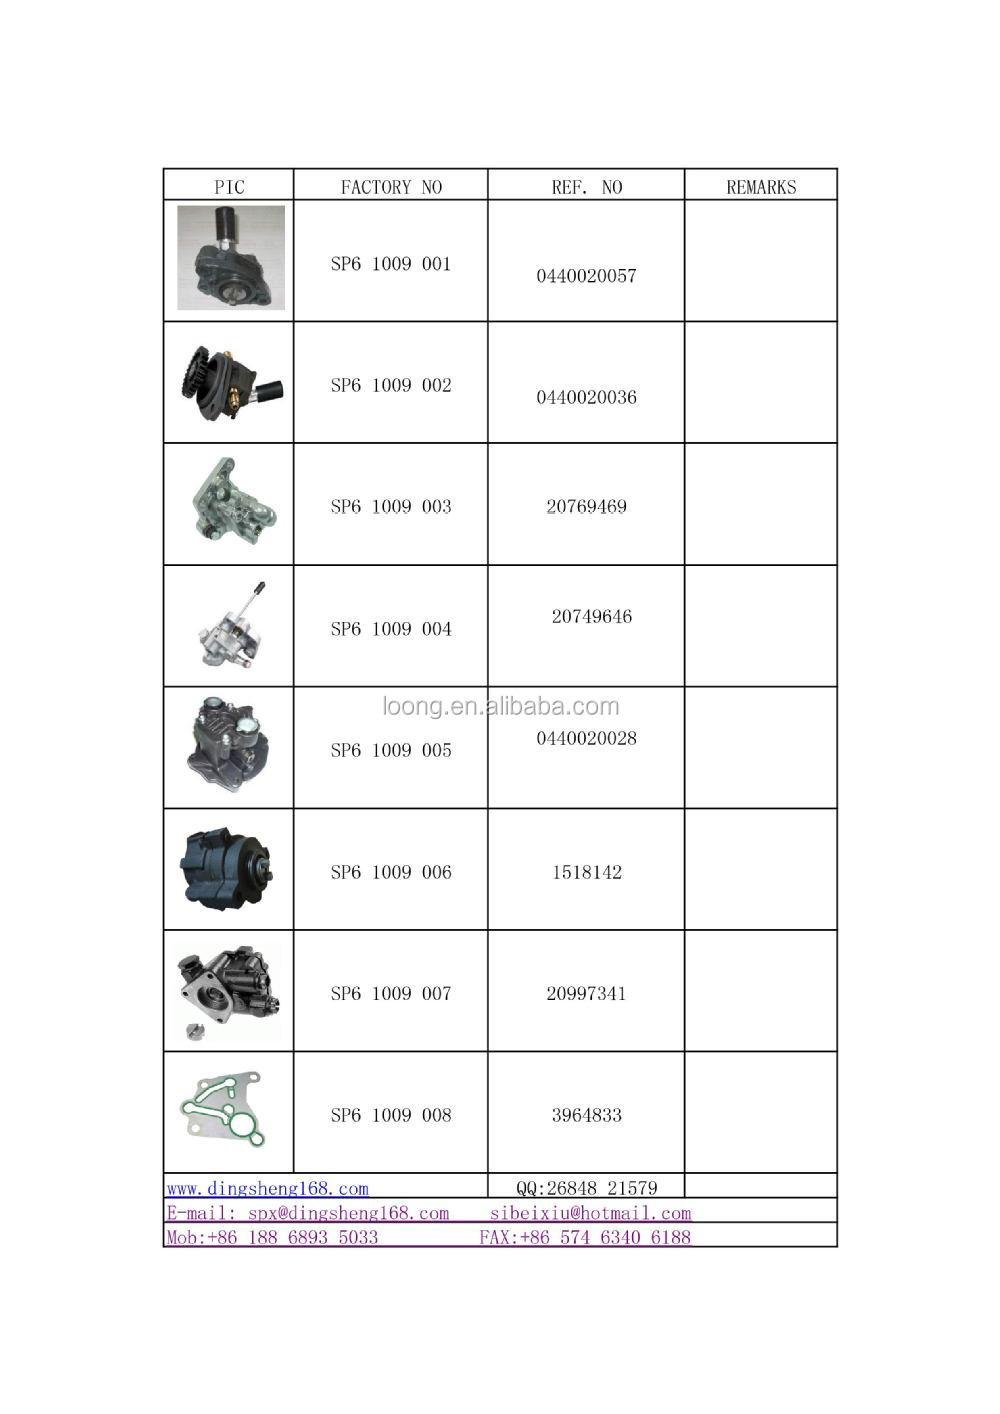 2014 New Products-Gear Pumps.jpg